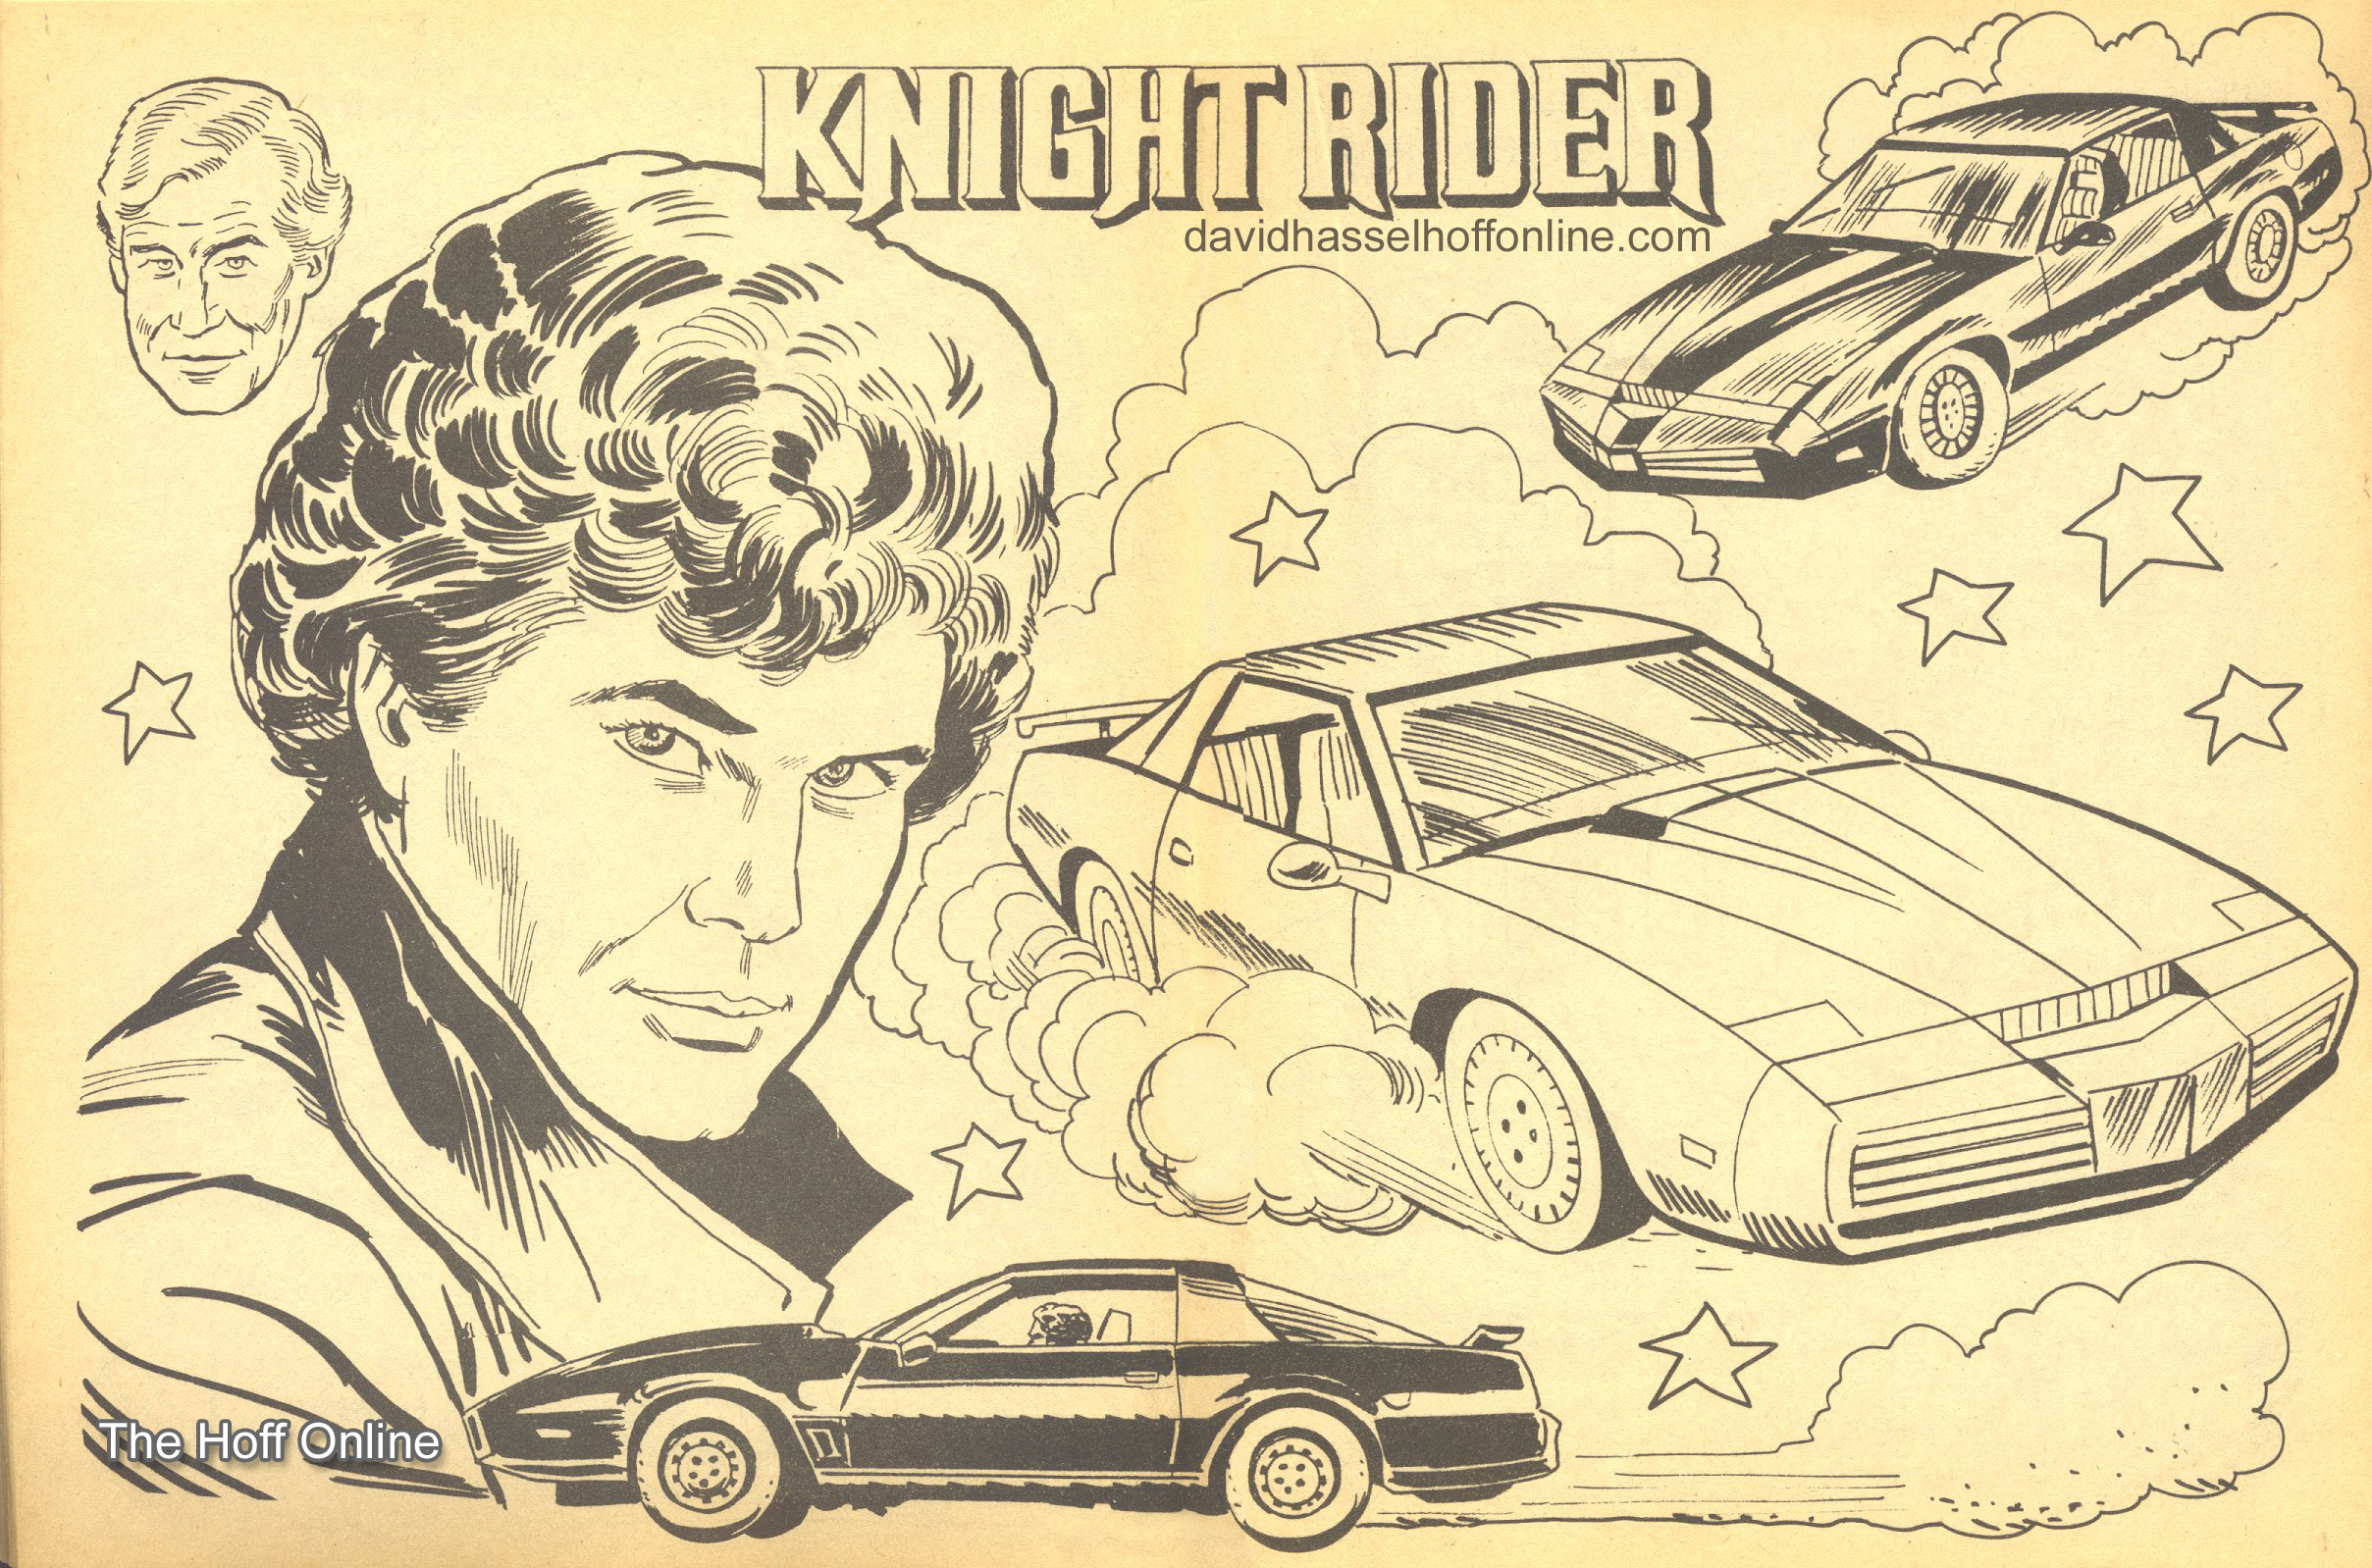 coloring pages the official david hasselhoff website